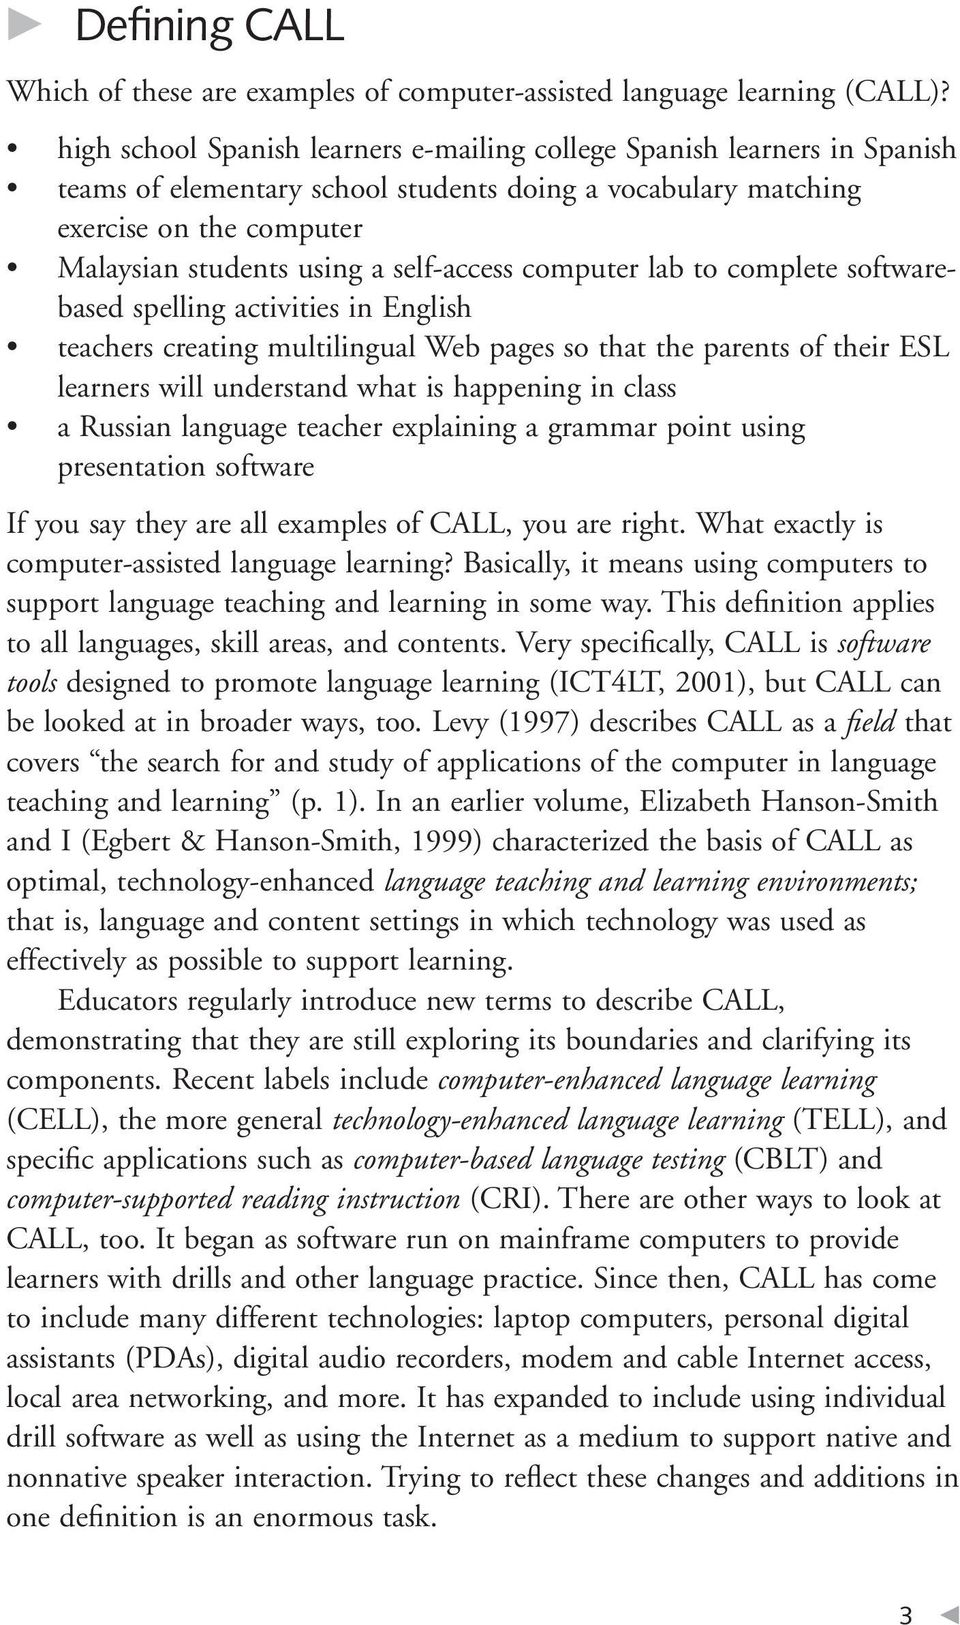 self-access computer lab to complete softwarebased spelling activities in English teachers creating multilingual Web pages so that the parents of their ESL learners will understand what is happening